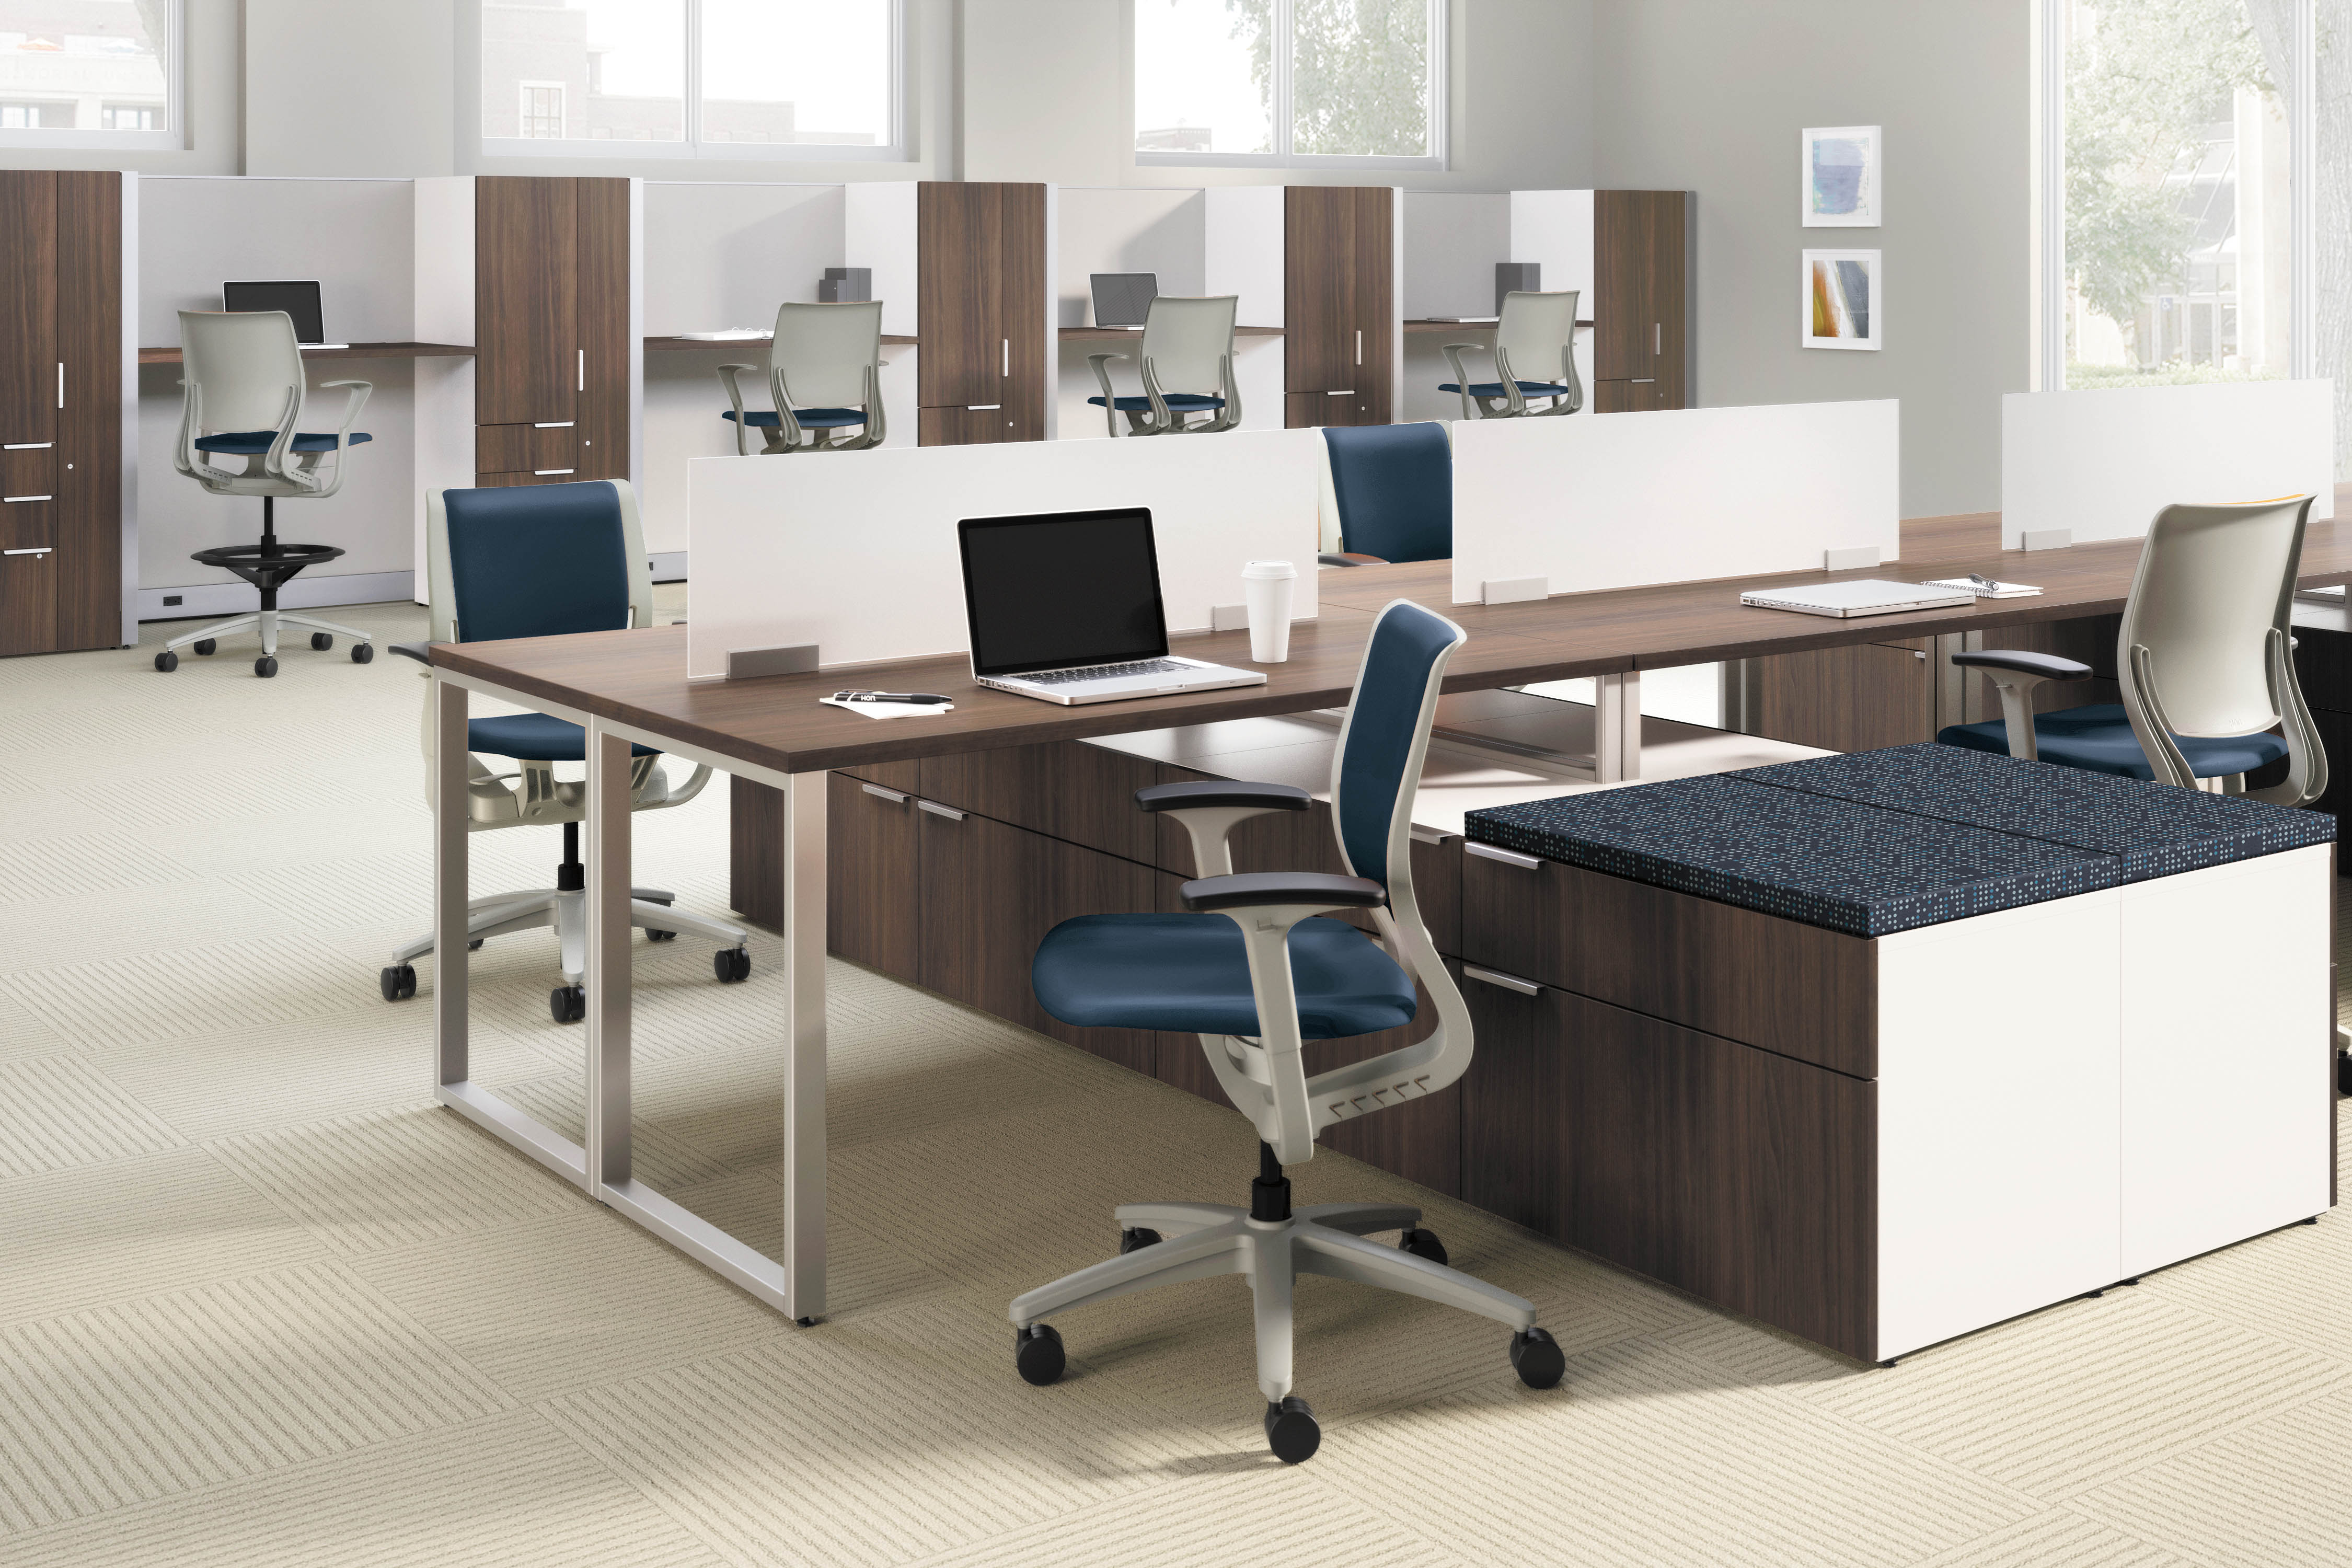 Benching System Indoff Interior Solutions